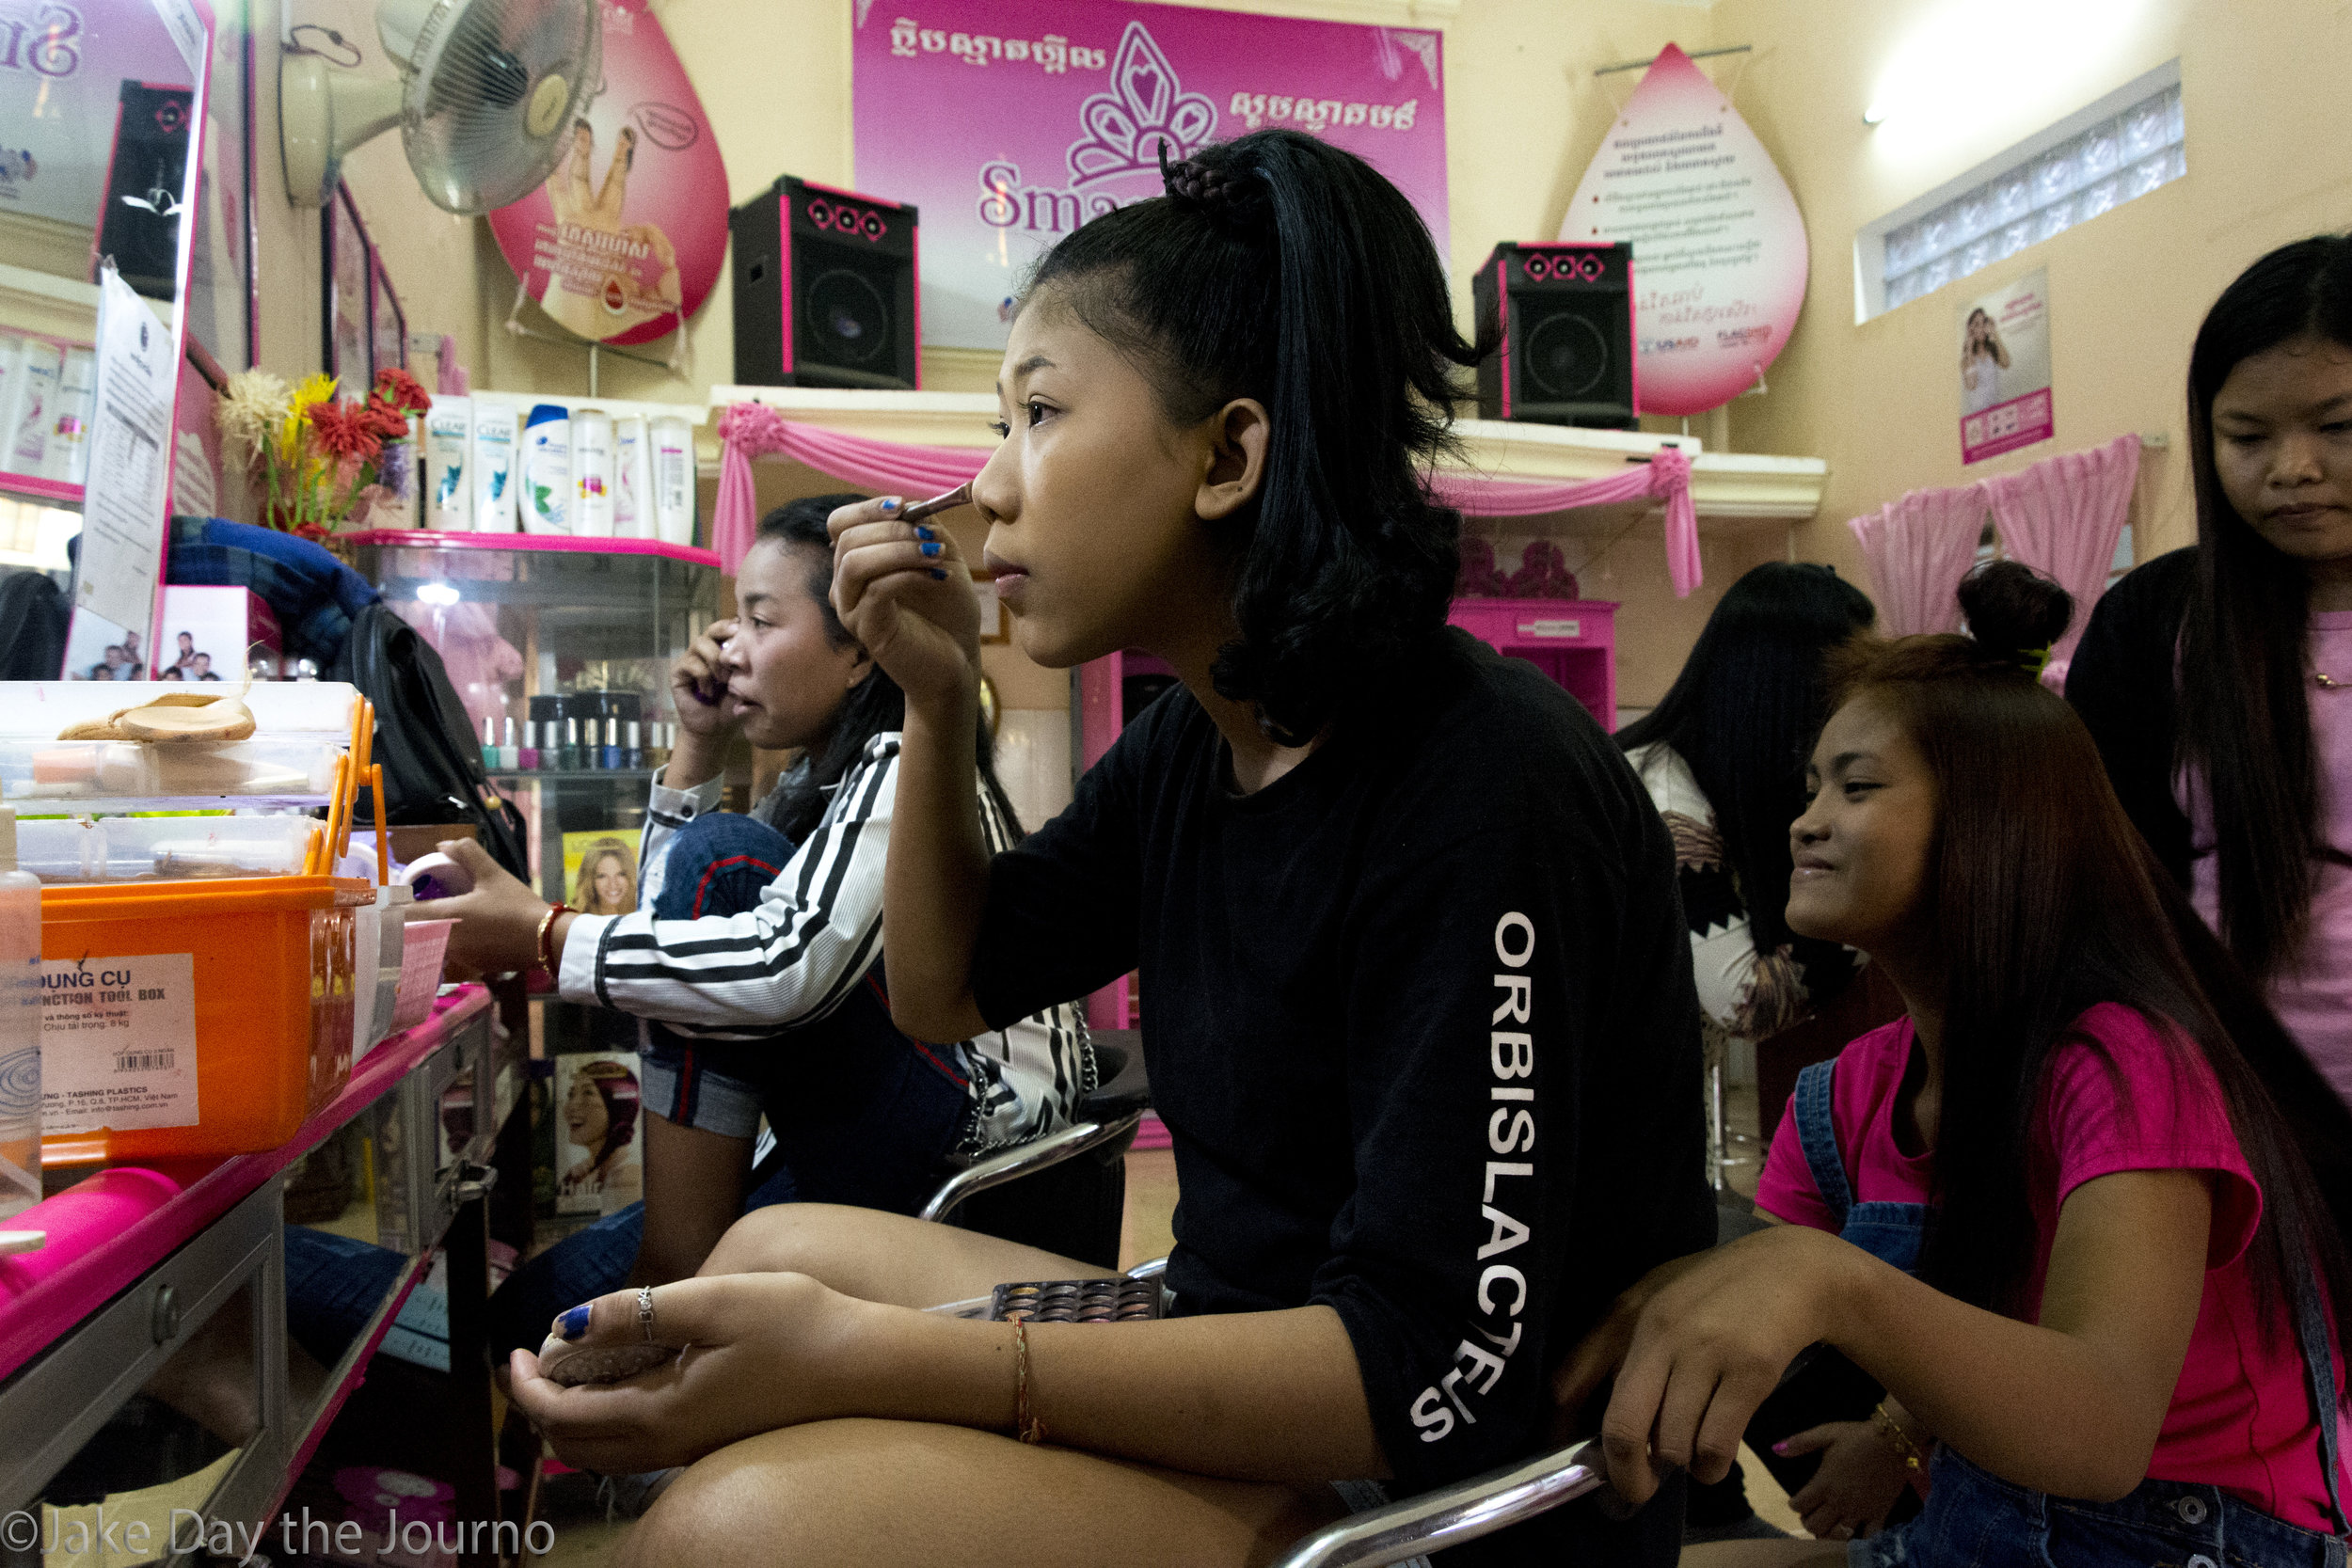 Entertainment Workers apply makeup at the SMARTgirl club in Siem Reap on 22/01/18 by Jake Day. The club begins to fill with Entertainment Workers late in the afternoon. After doing their makeup and hair they will head out to work night shifts at various establishments.